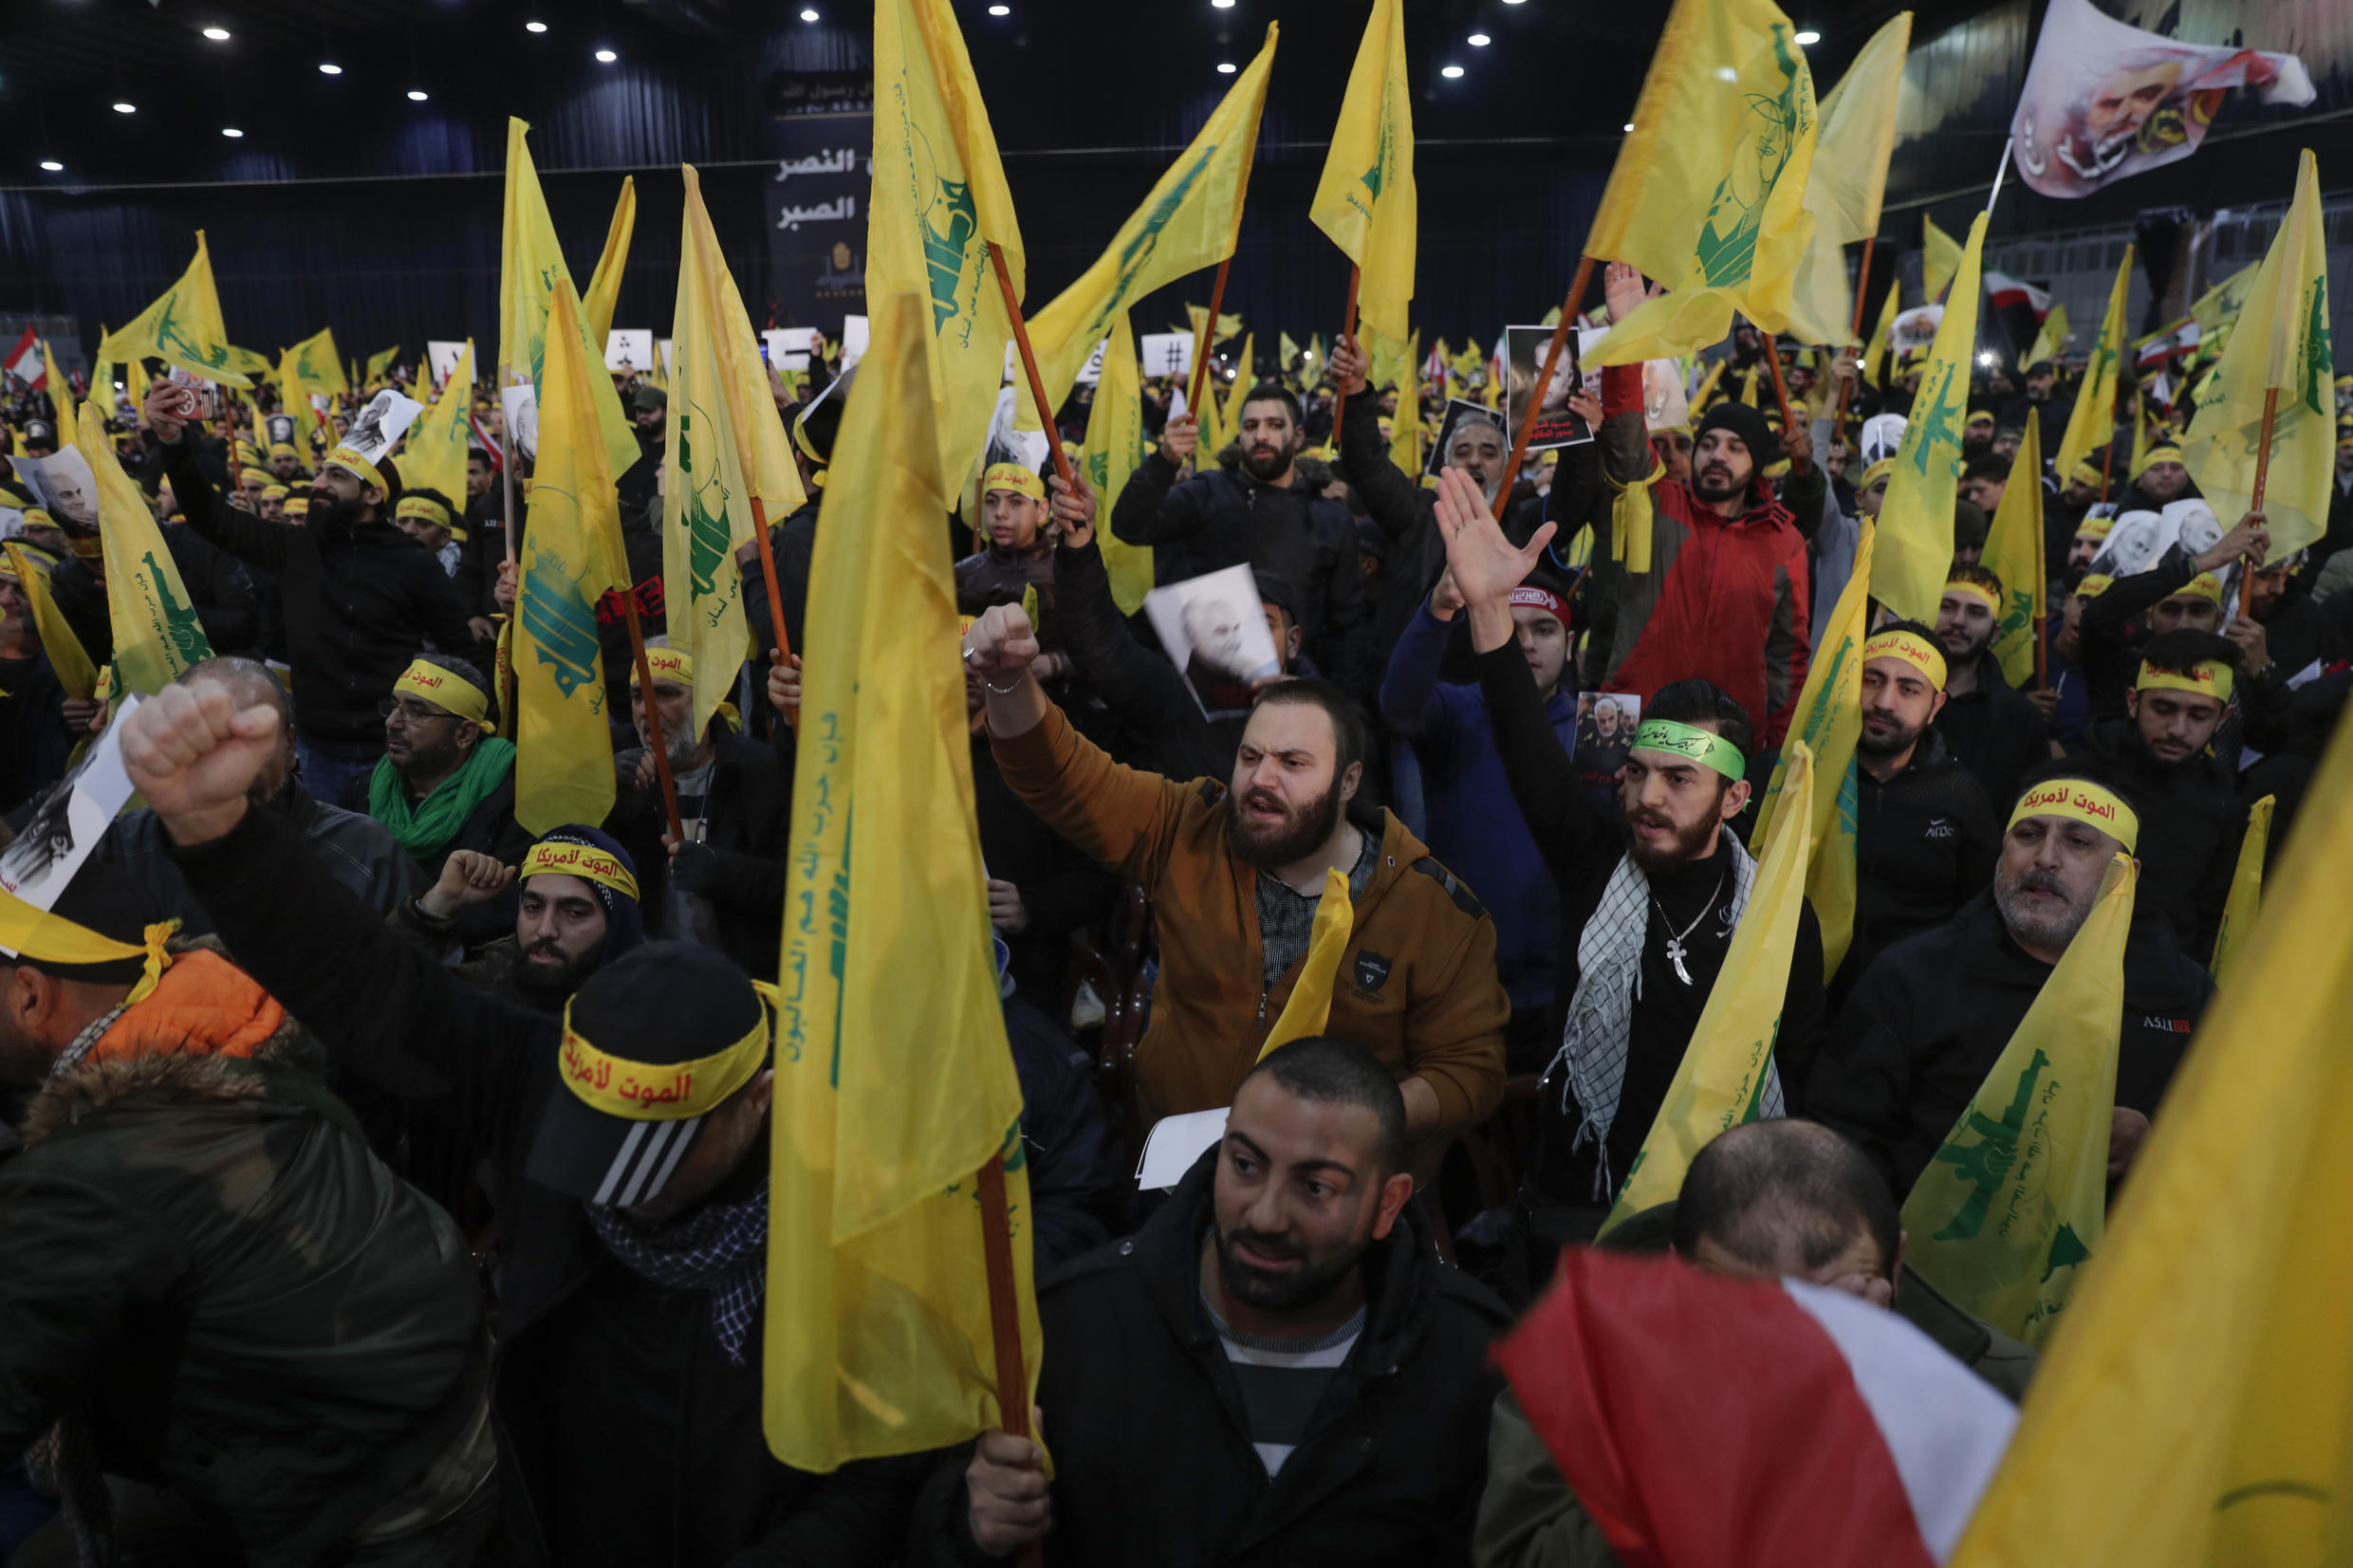 Hezbollah supporters wave flags in the suburbs of Beirut on January 5, 2020. Muhammad Kawtharani is a senior leader in the Lebanese Shiite movement, the US says